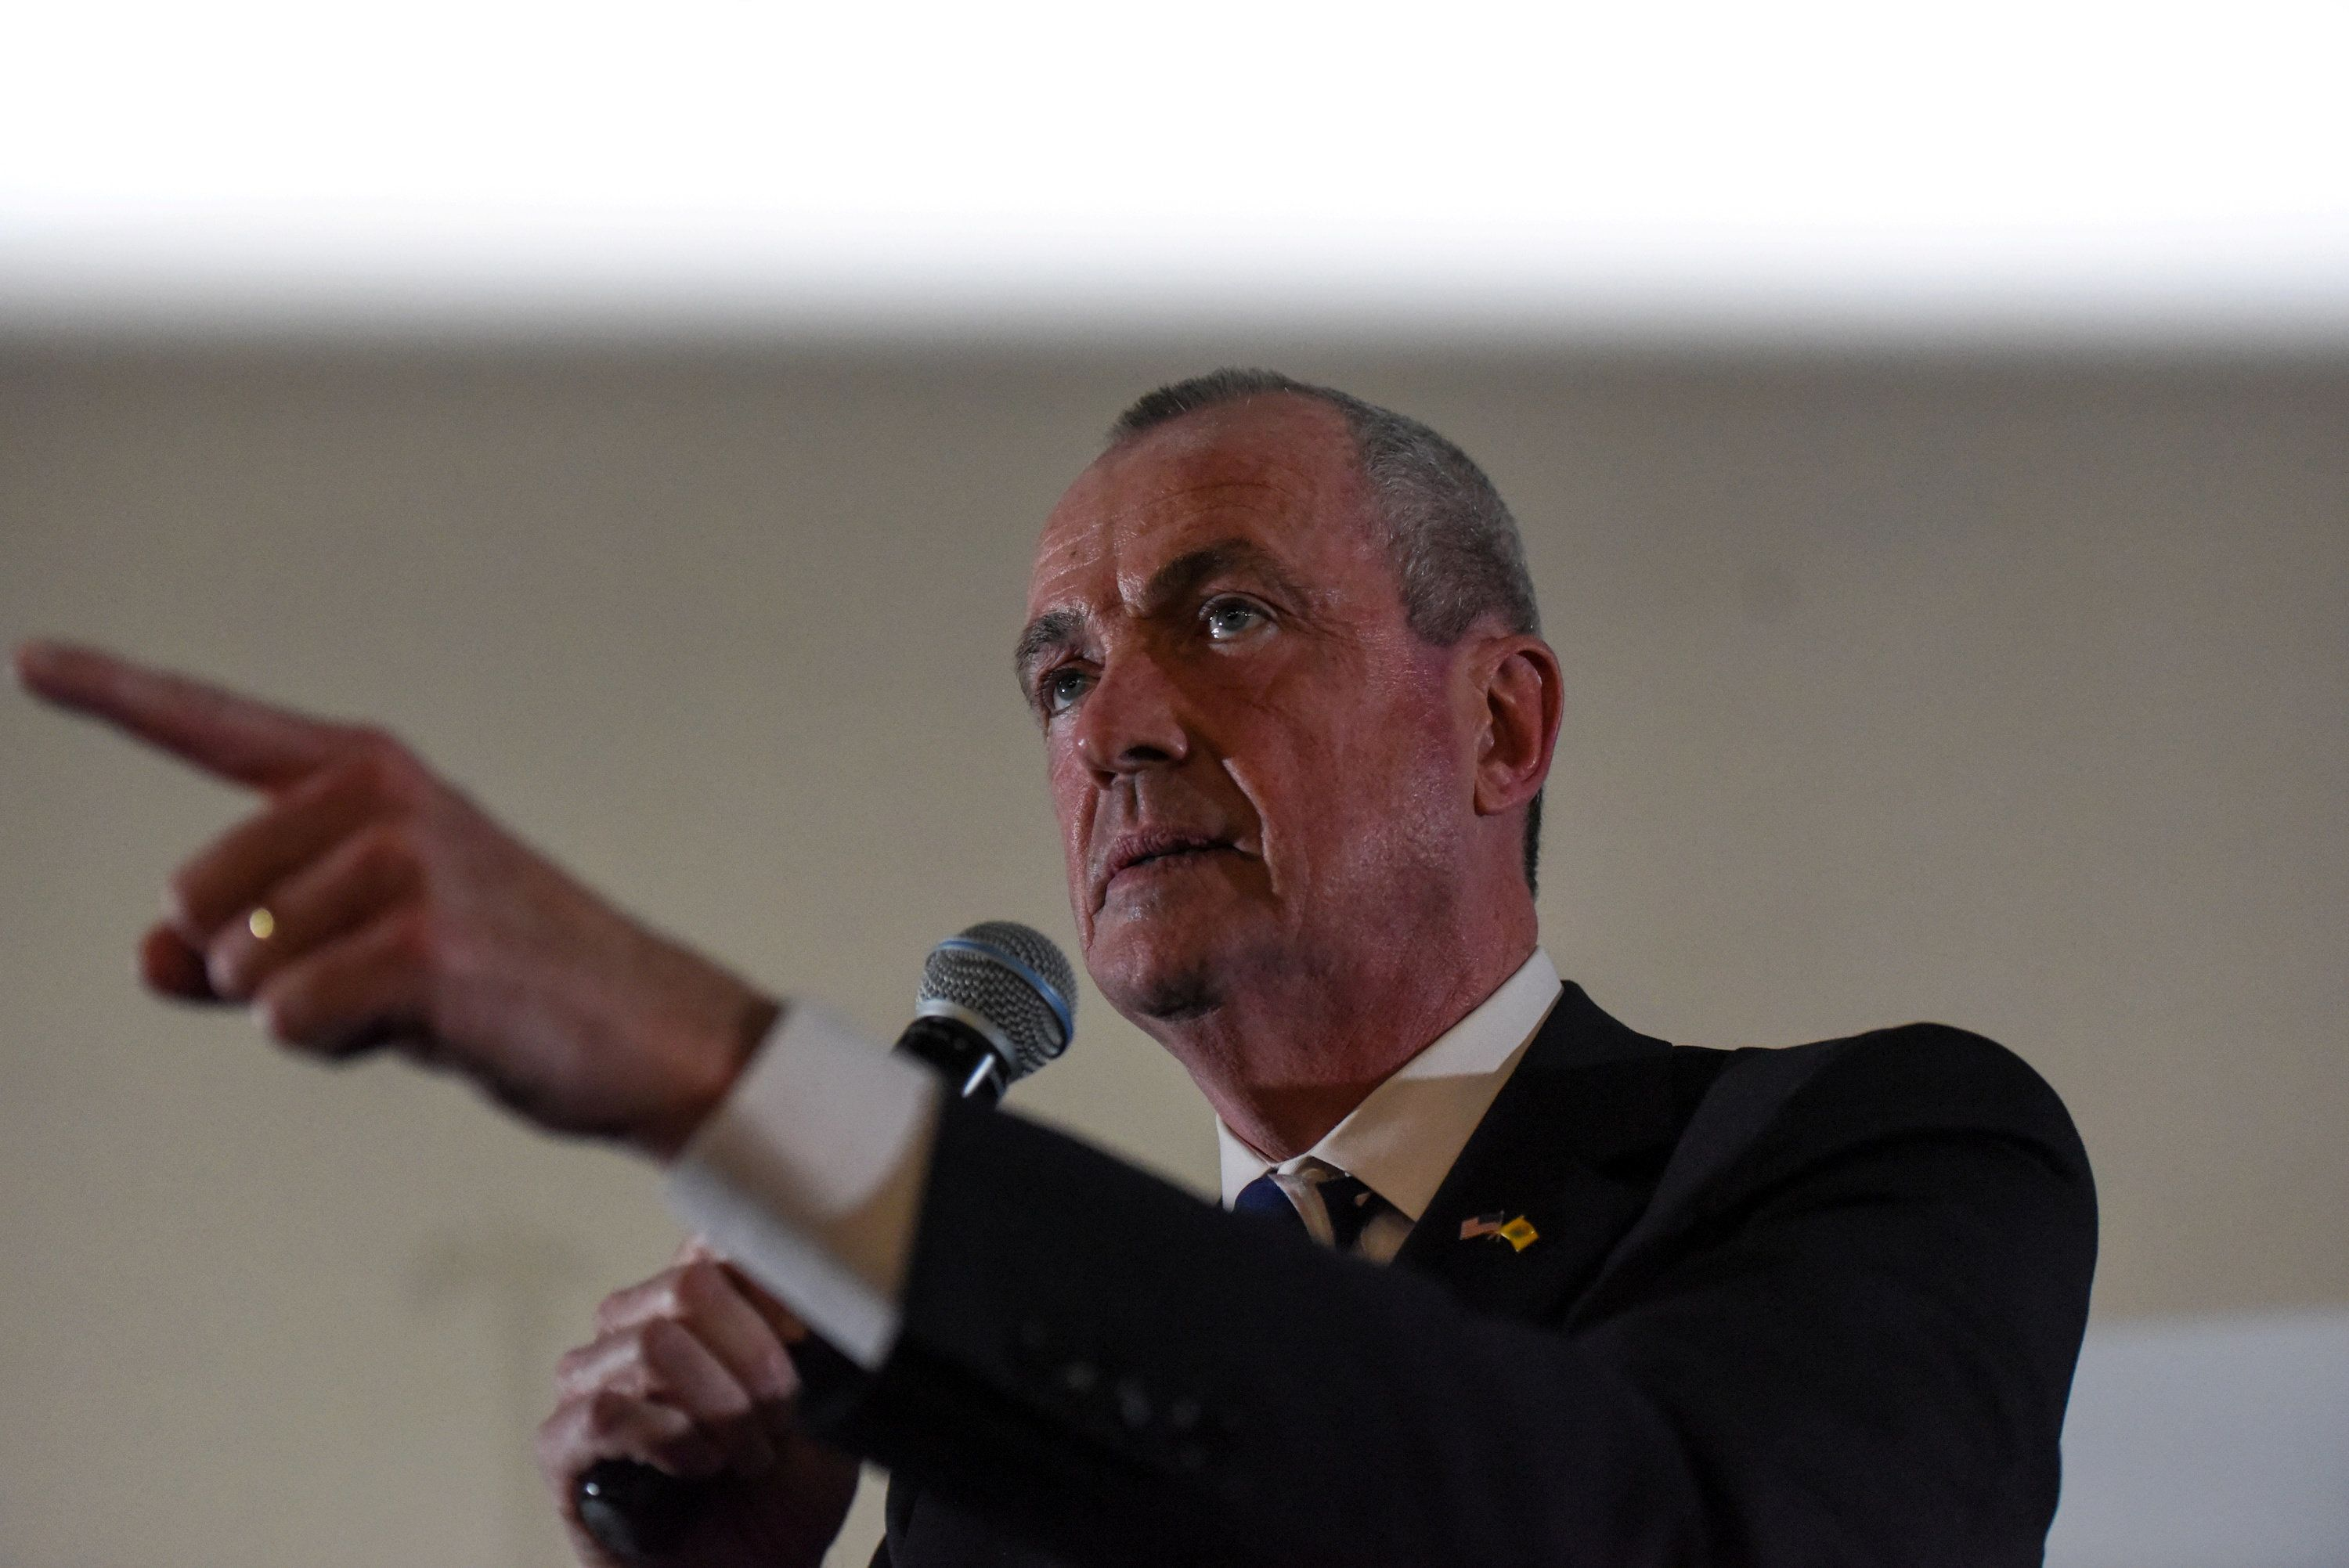 Phil Murphy, a candidate for governor of New Jersey, speaks during the First Stand Rally in Newark, New Jersey, on Jan. 15.